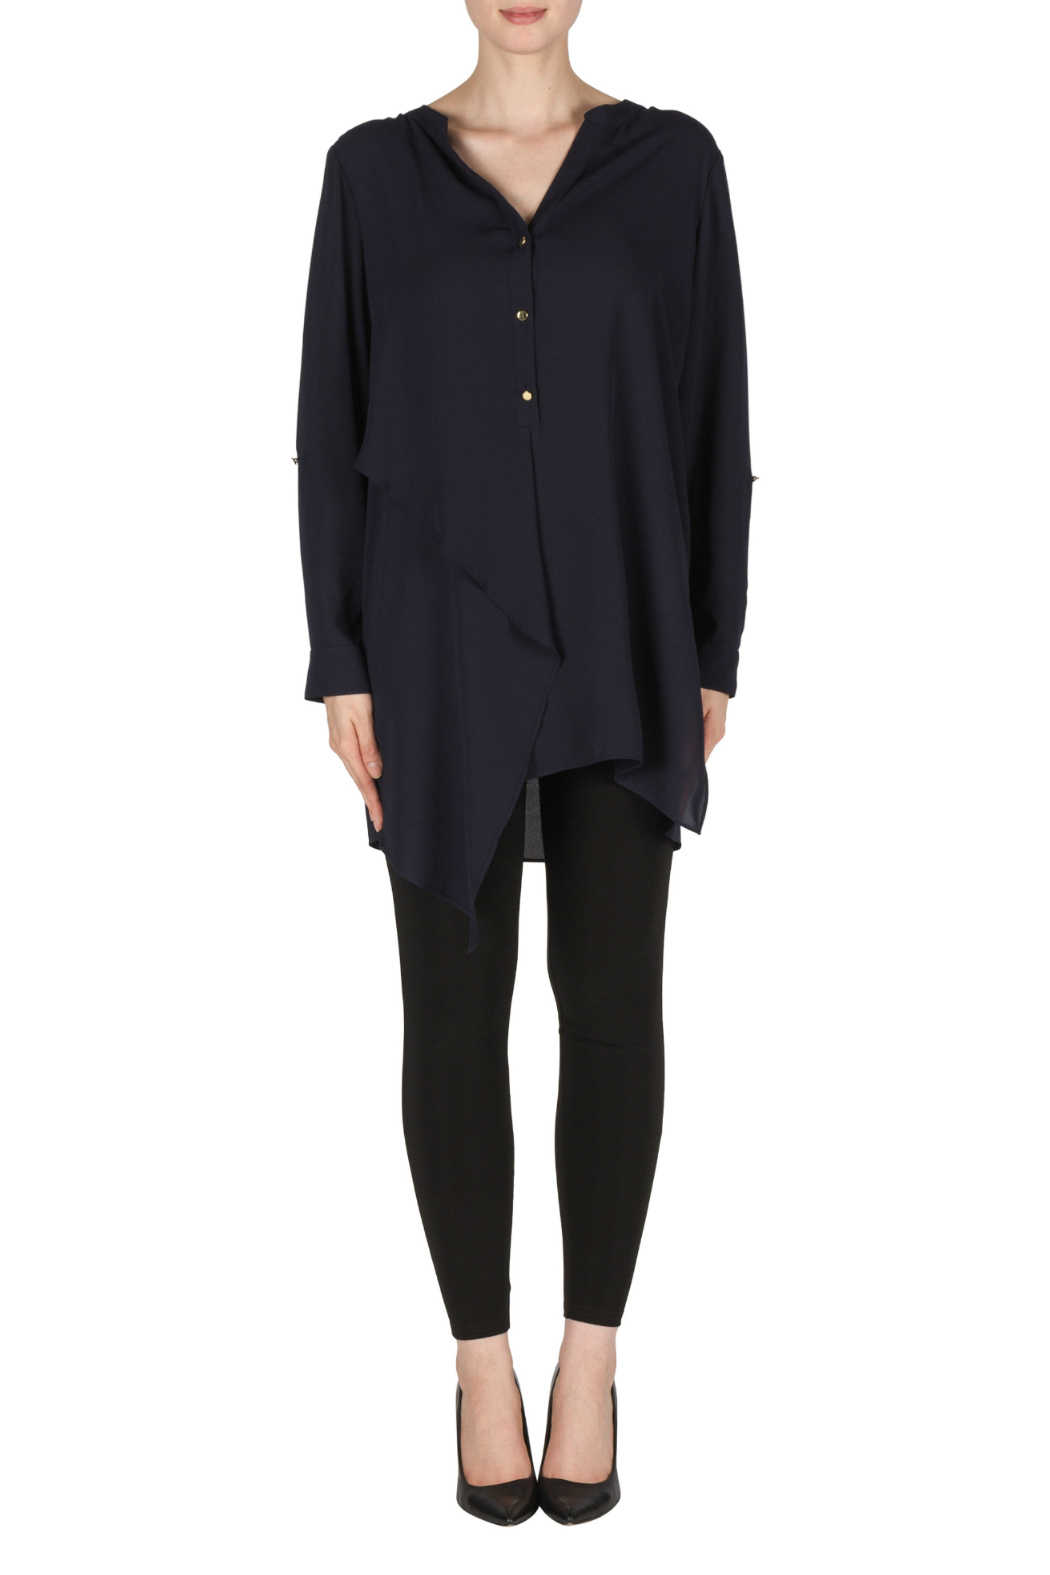 Joseph Ribkoff Navy Layered Tunic Blouse - Main Image